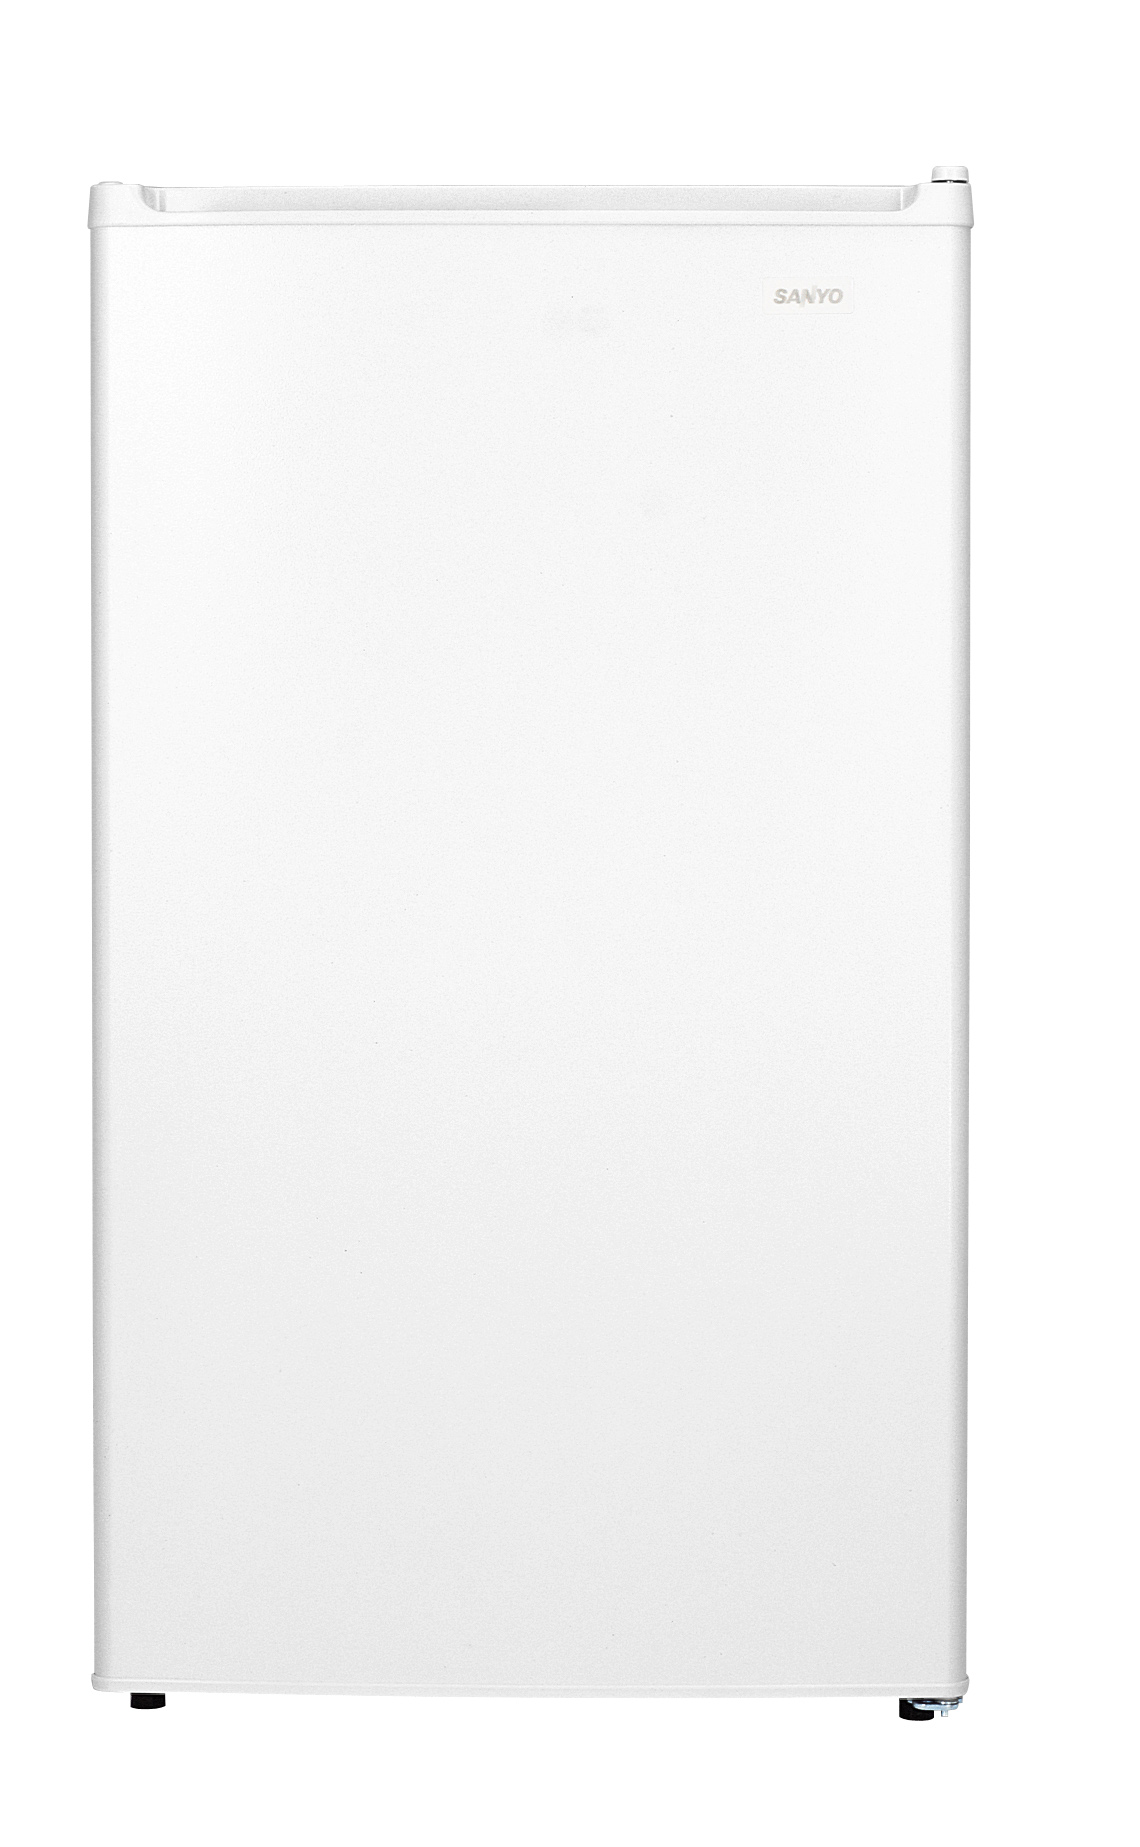 Sanyo sr4310w white referigerator 4.3cf reversible door